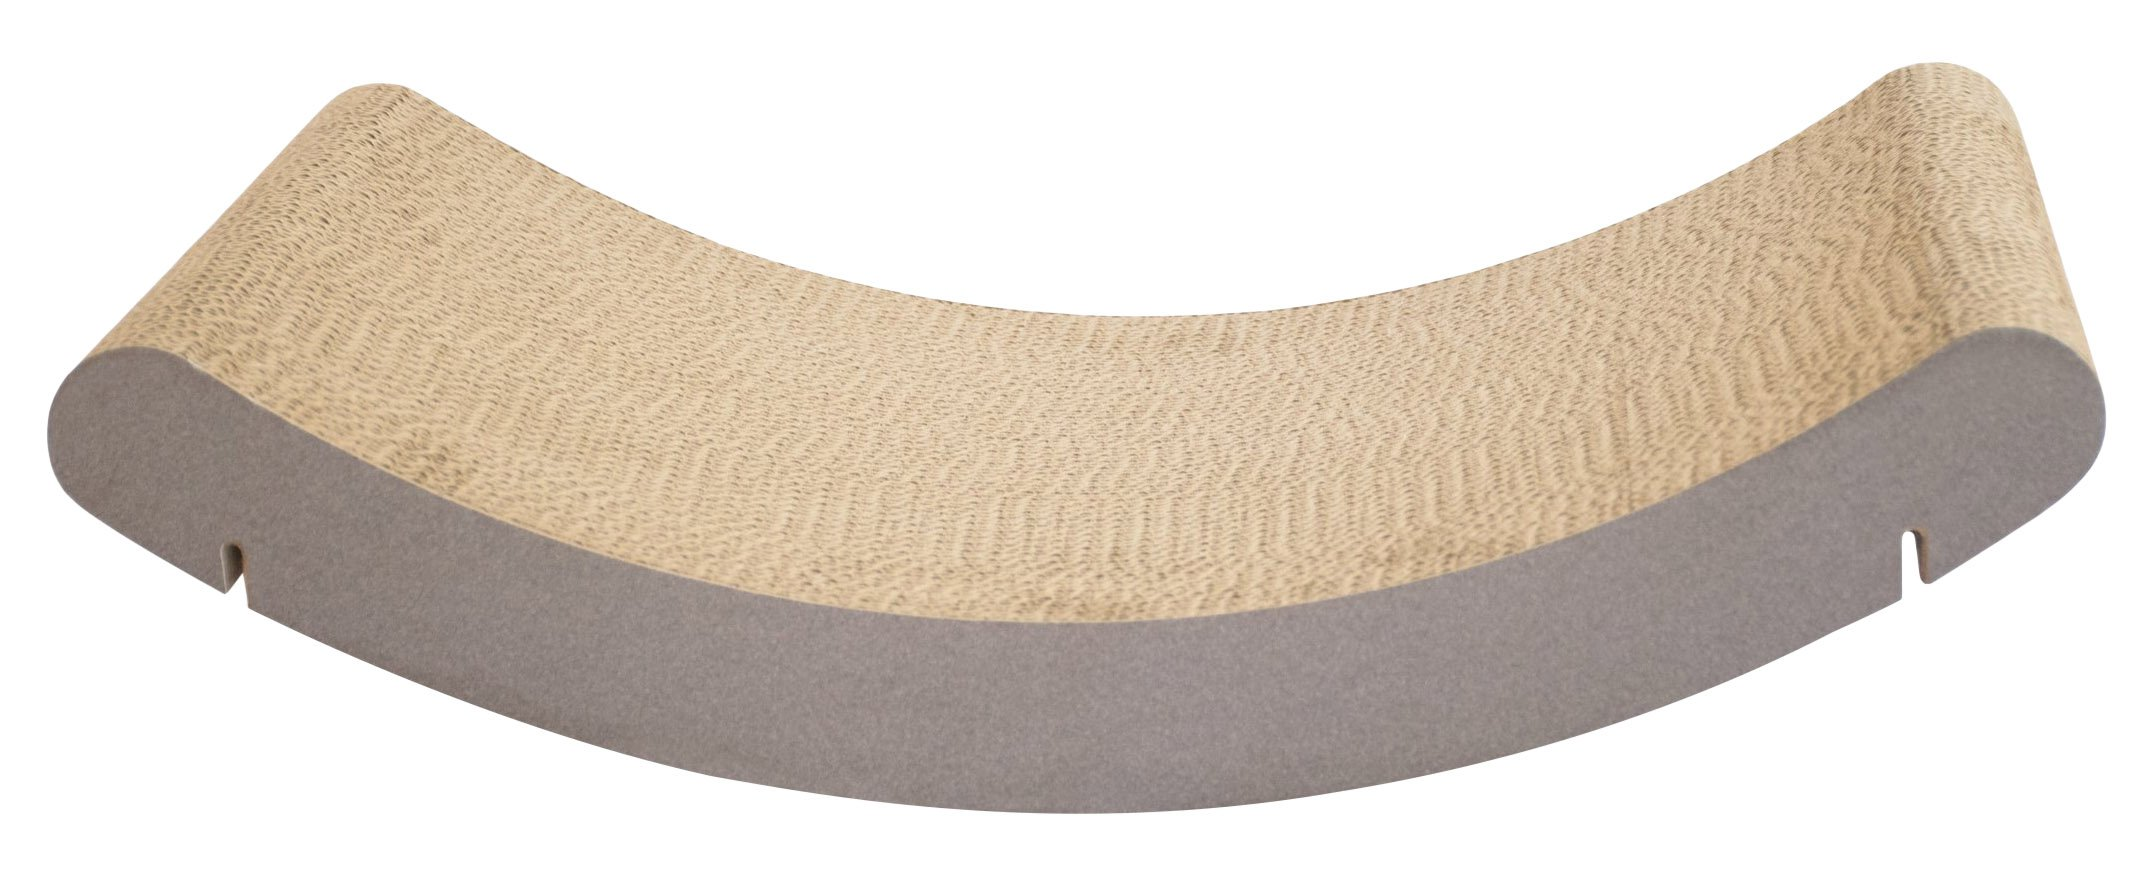 """K&H Pet Products EZ Mount Scratcher Kitty Sill Cradle REFILL ONLY Tan 11"""" x 20"""" x 2"""""""